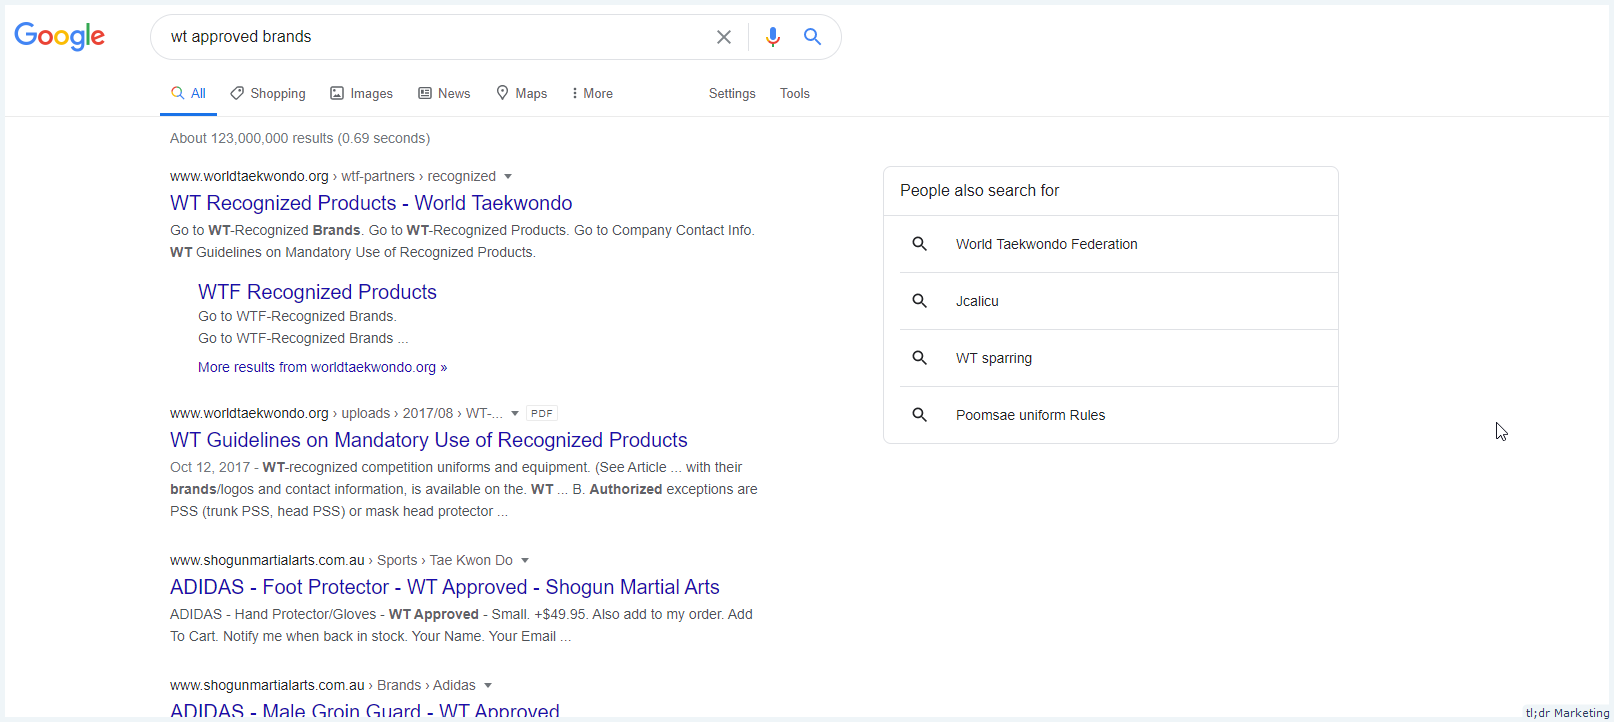 Google Is Testing People Also Search For on the Right in Desktop SERPs 1 - SEO News